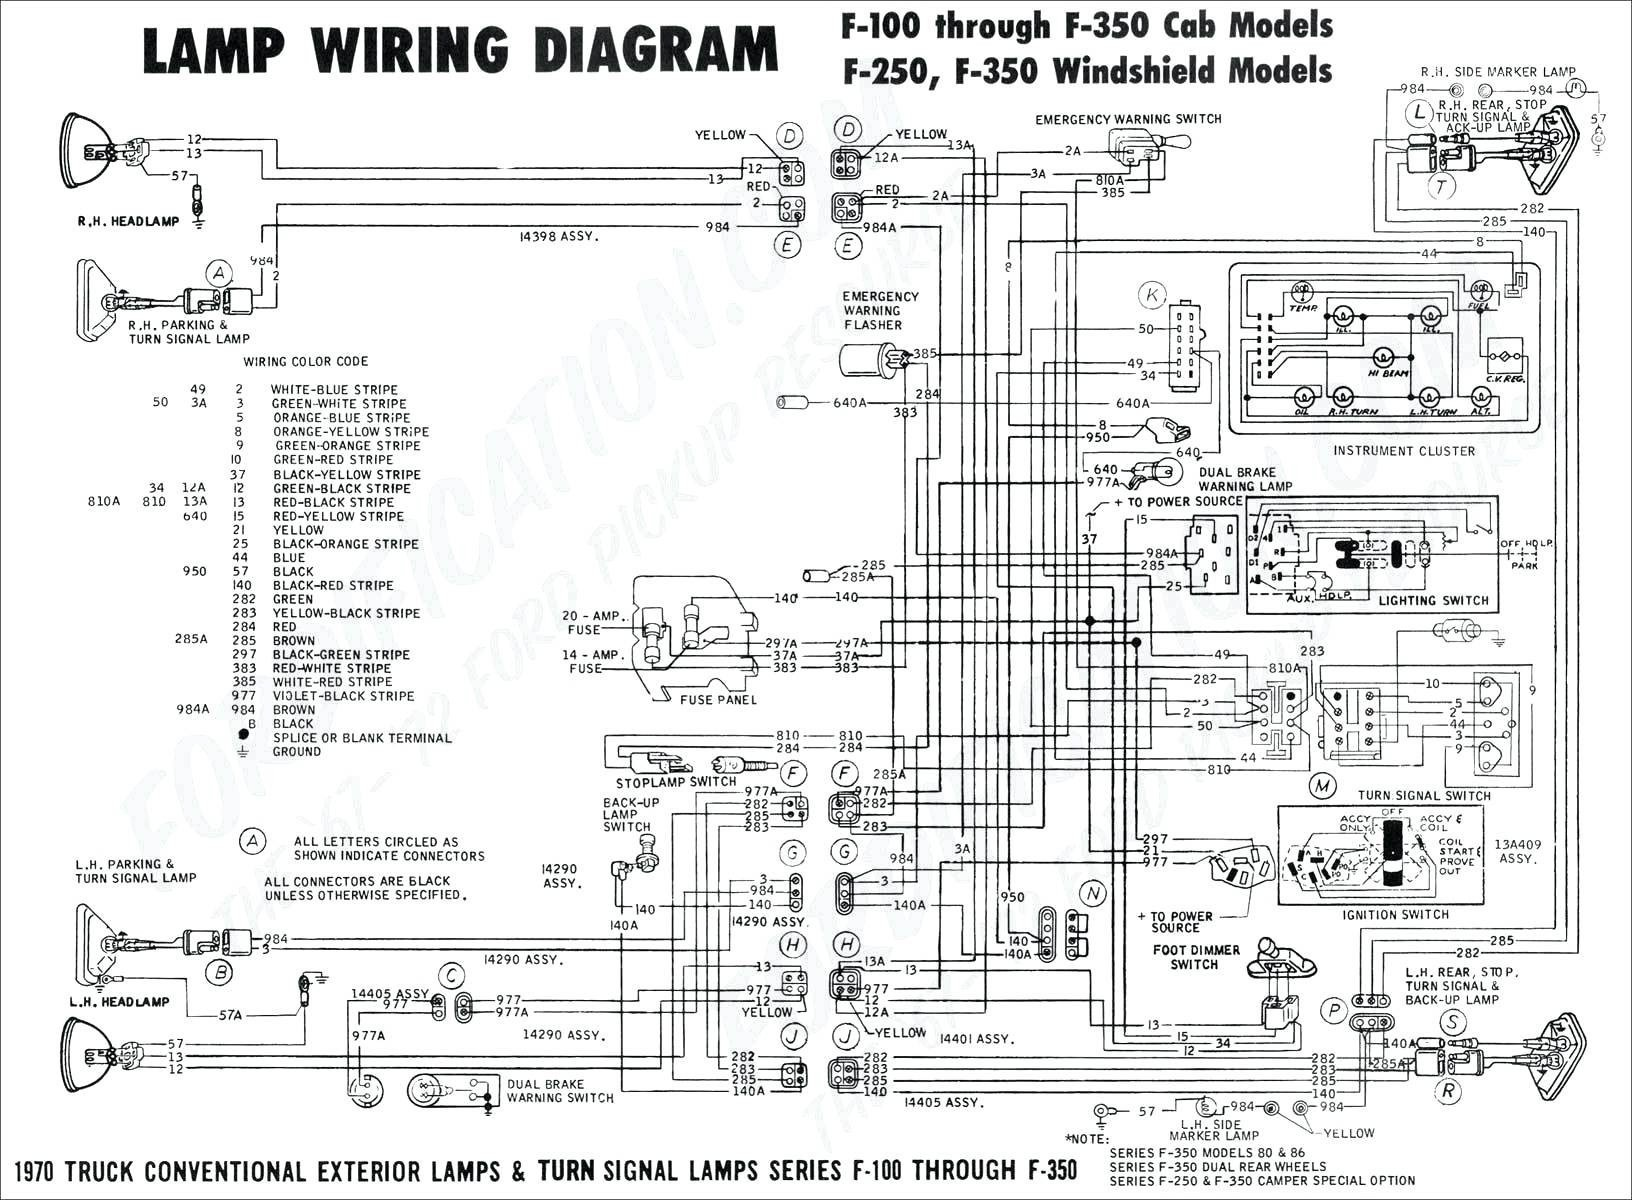 Tork Wiring Schematic for Lighting Contactor and Photocell Eaton atc 800 Wiring Diagram Contactor Wiring Diagram A1 A2 Of Tork Wiring Schematic for Lighting Contactor and Photocell F62dca3 tork Lighting Contactor Wiring Diagram